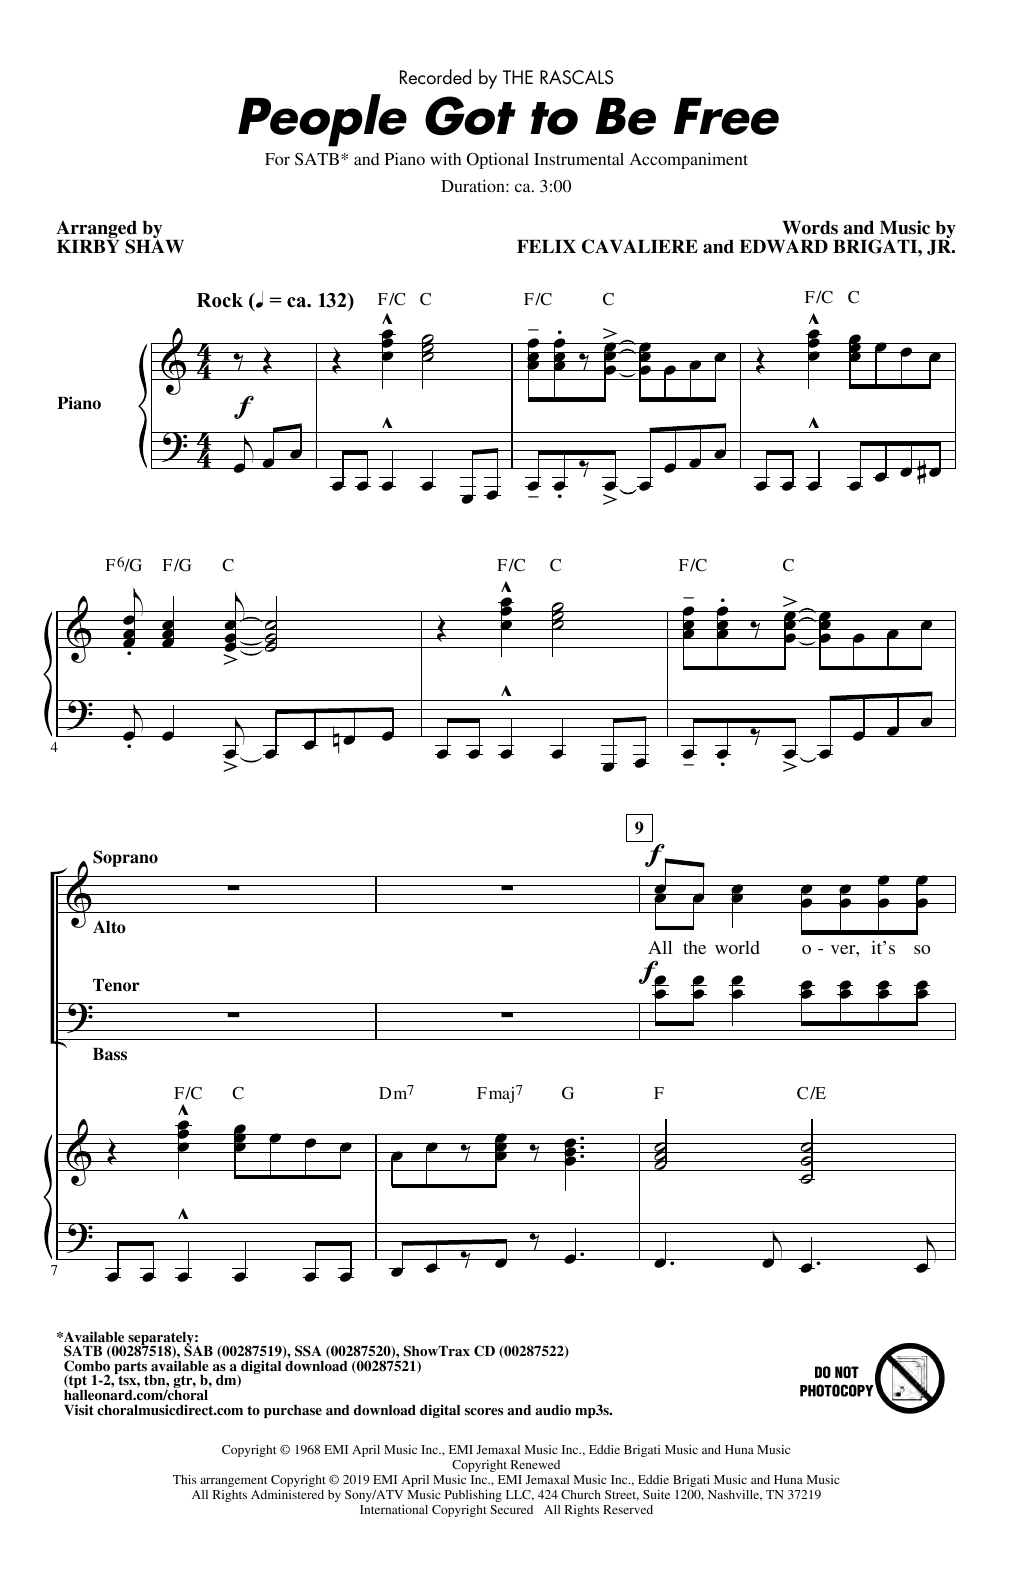 The Rascals People Got To Be Free (arr. Kirby Shaw) sheet music notes and chords